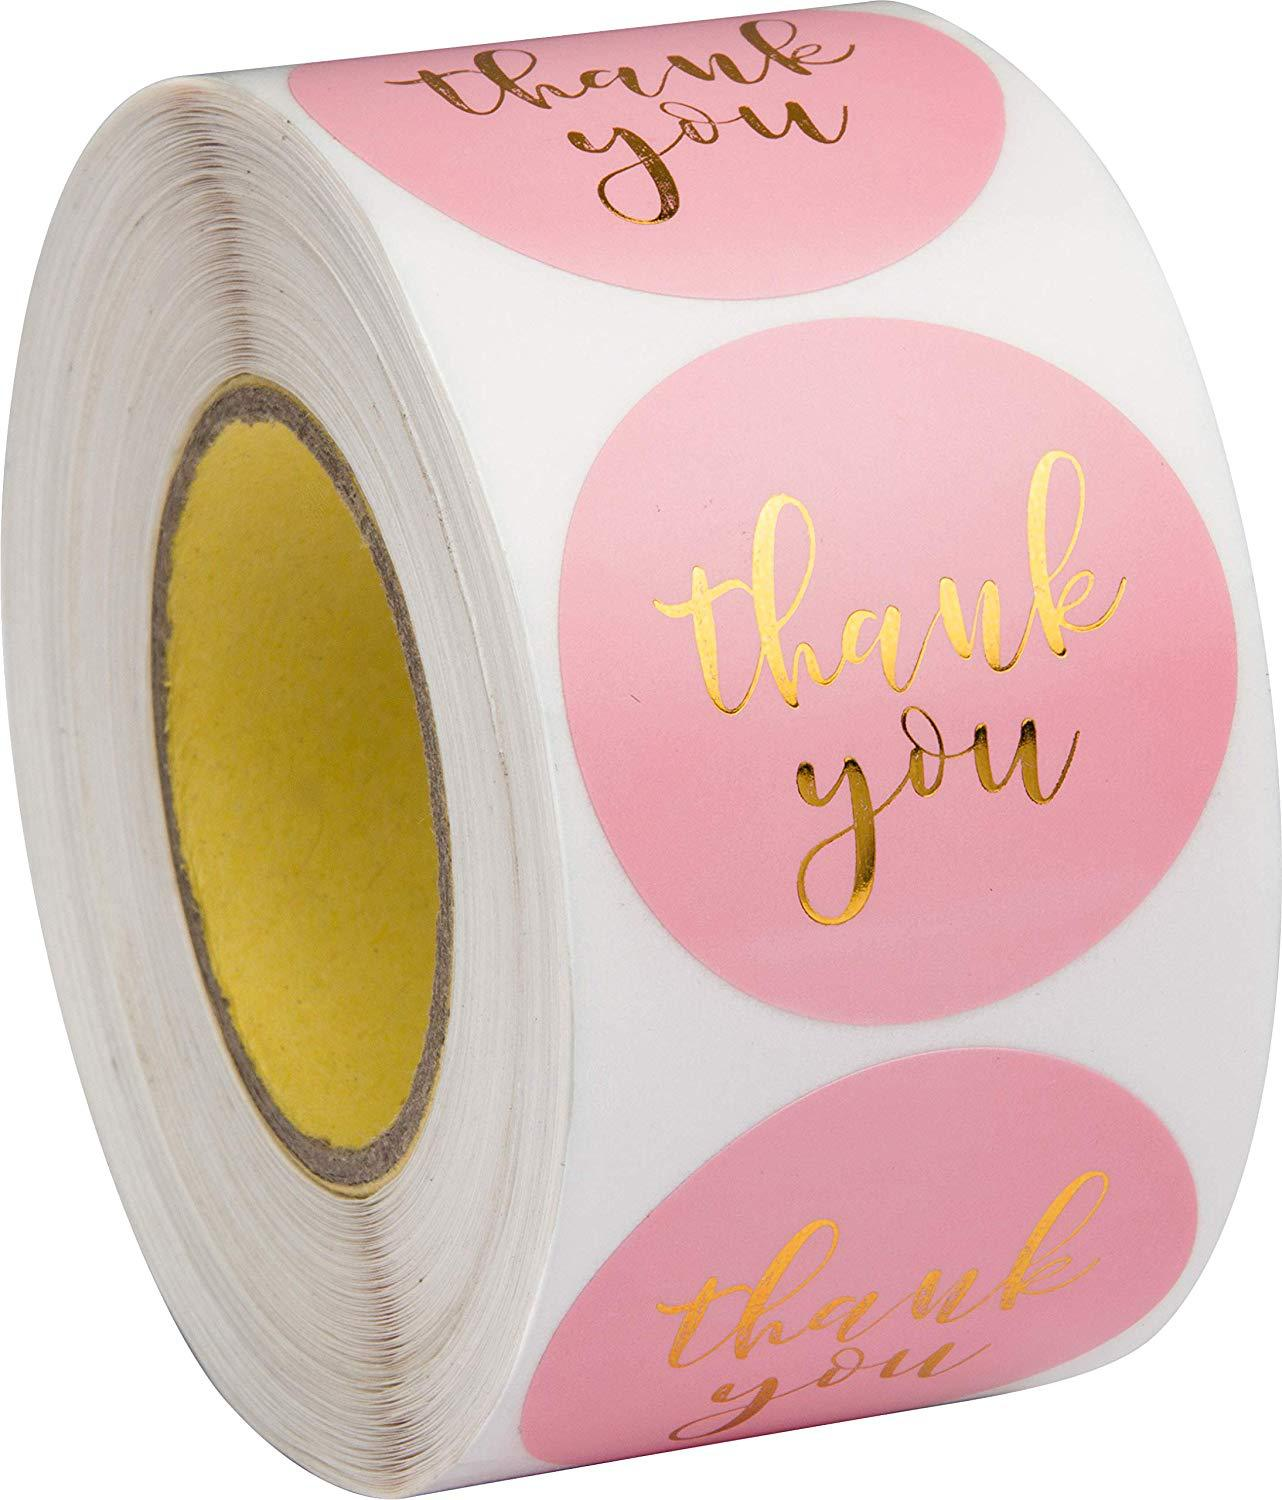 Pink Paper Label Stickers Foil Thank You Stickers Scrapbooking 1'' 500pcs  Wedding Envelope Seals Handmade Stationery Sticker